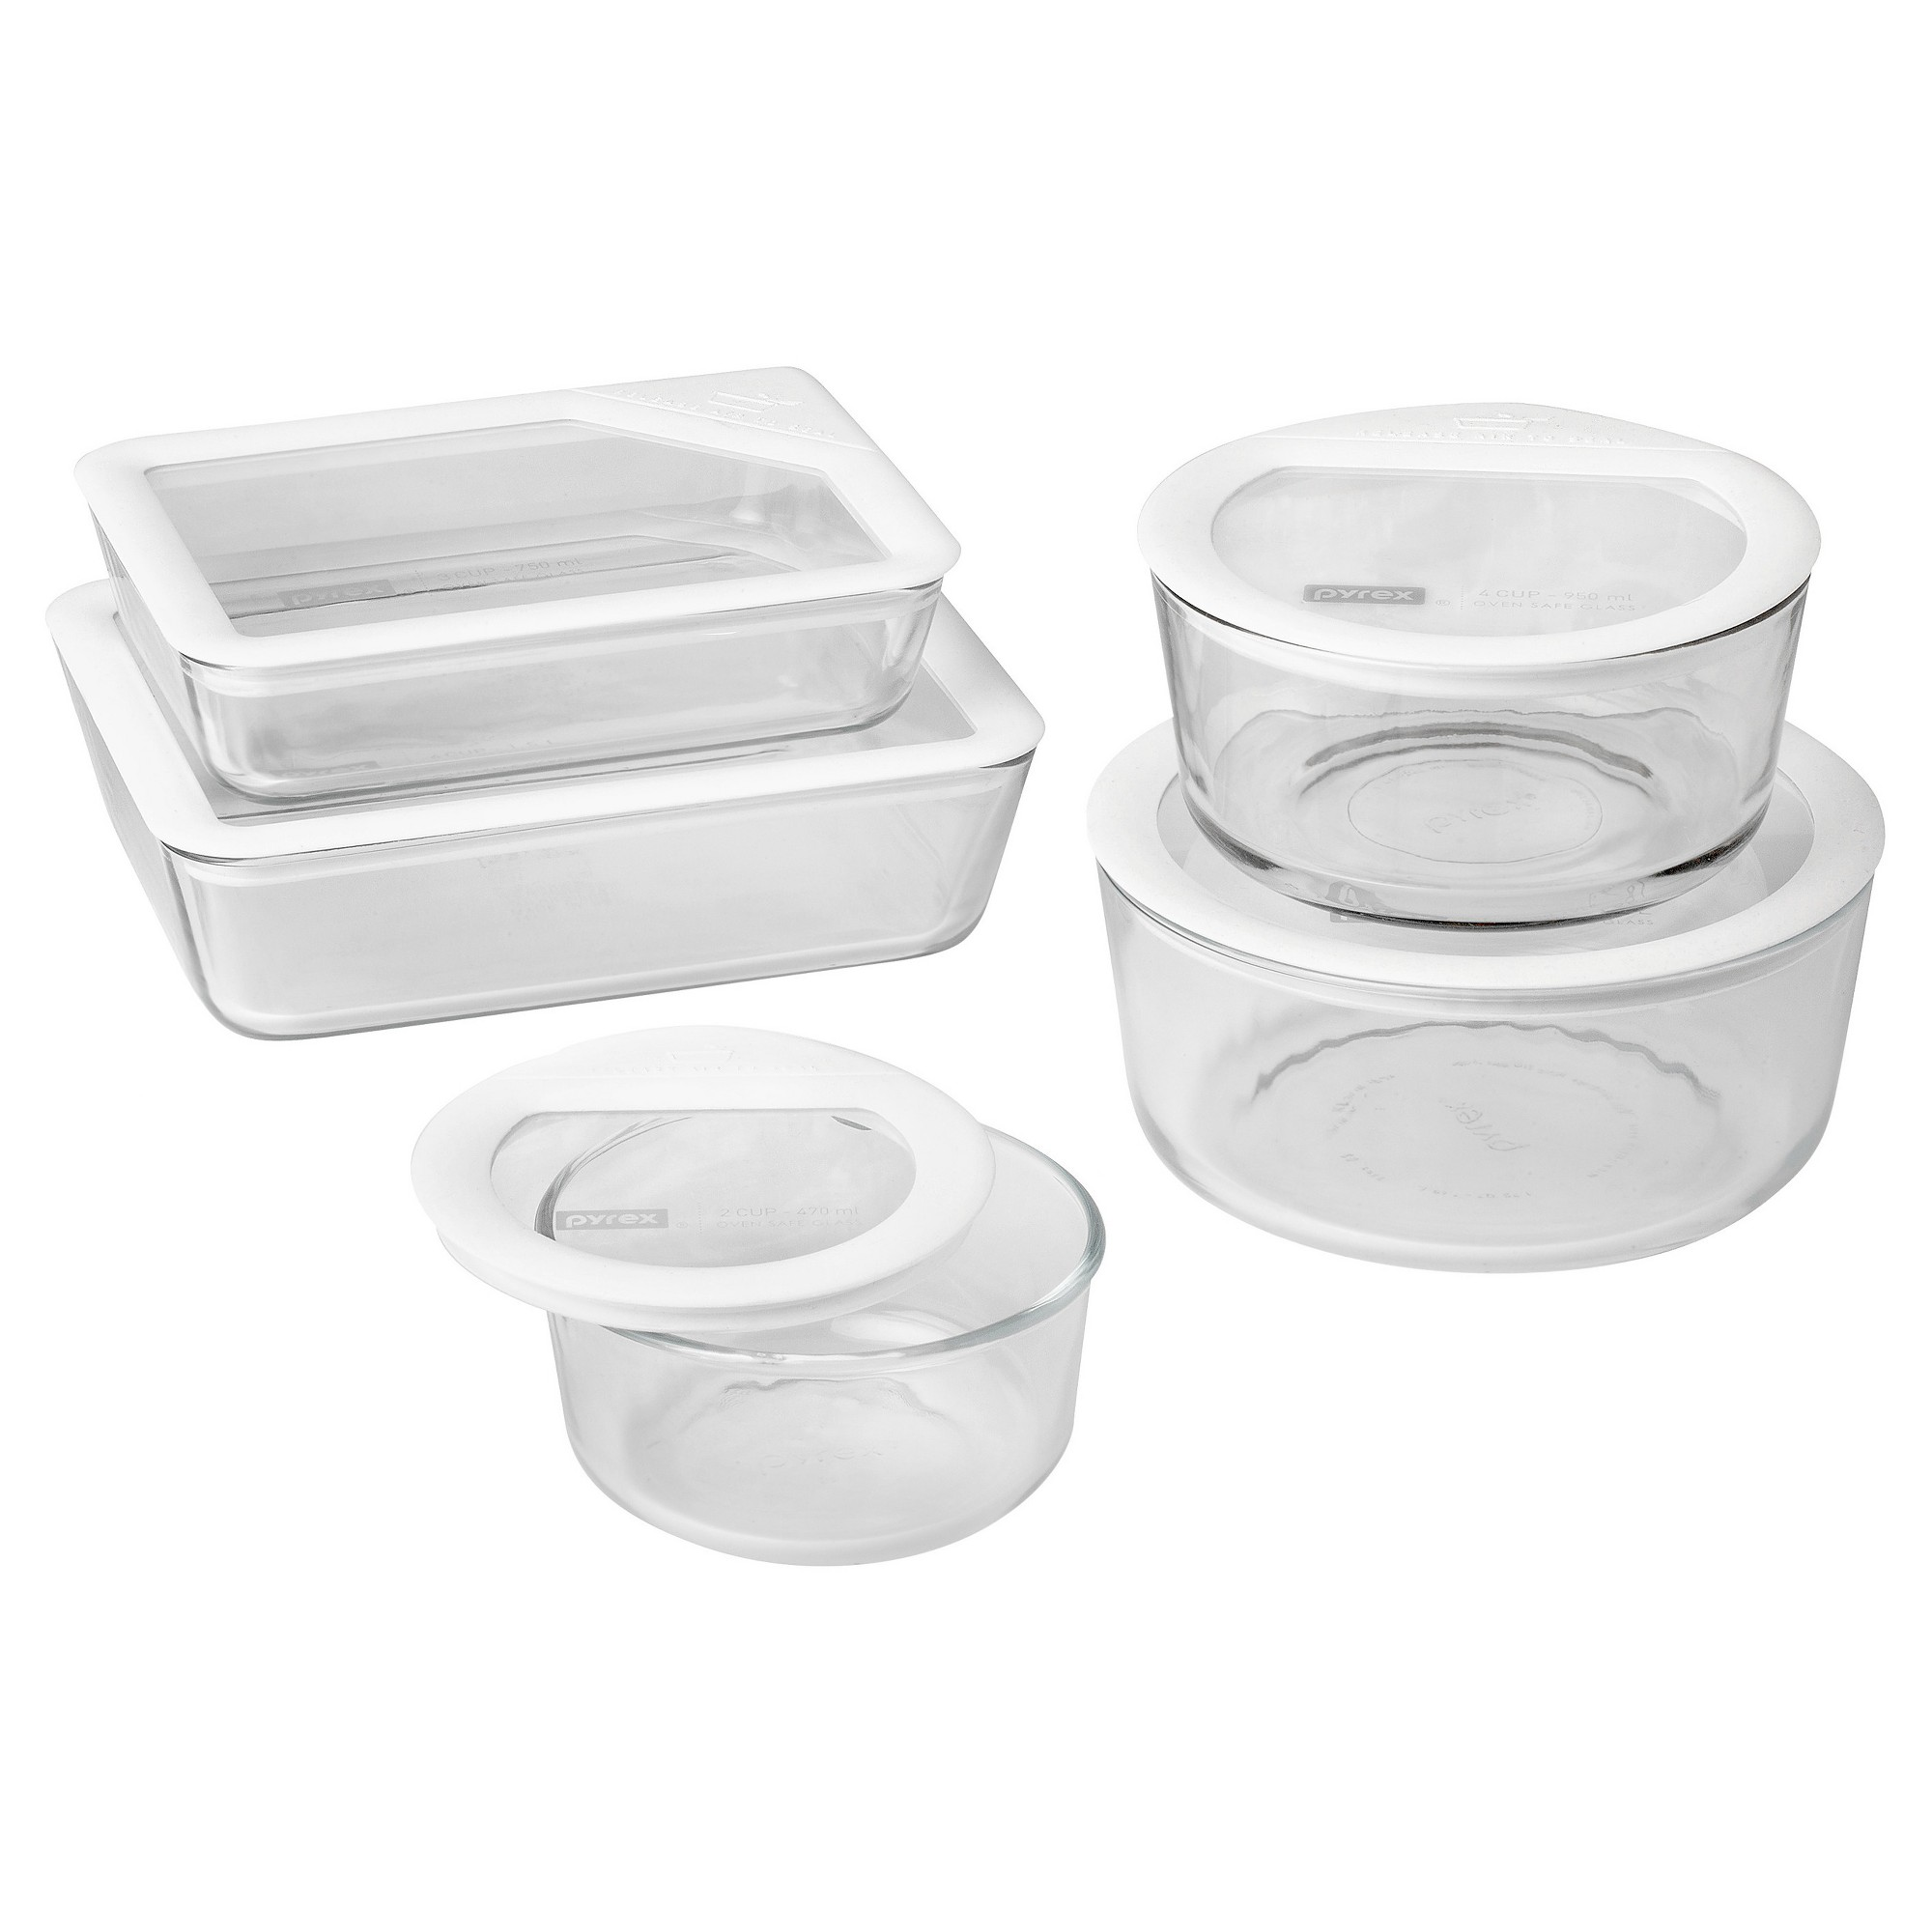 7330409cb27e Pyrex 10pc Ultimate Glass Lid Set White in 2019 | Products | Glass ...